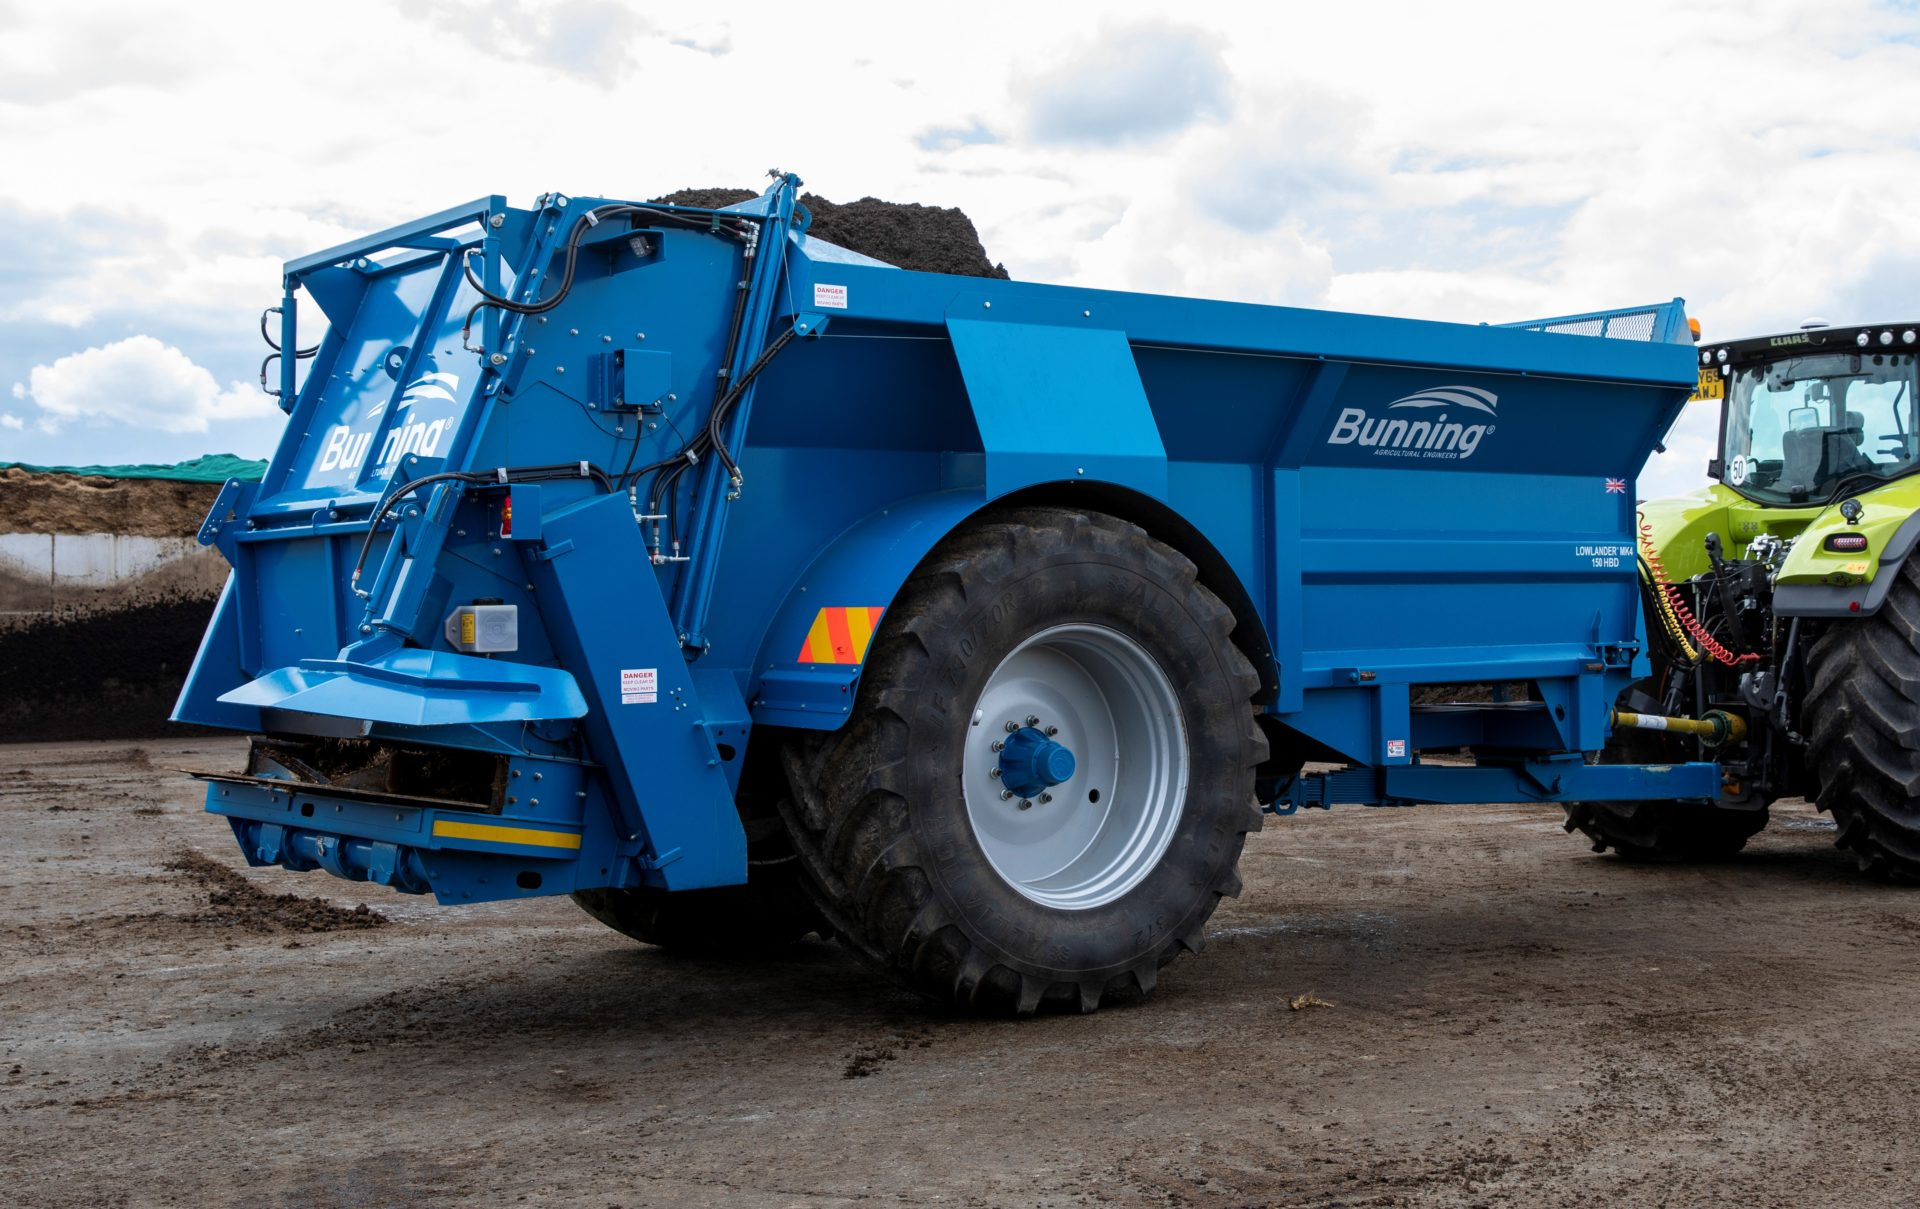 Lowlander 150 HD HBD Mk2 with slurry door, slurry door indicator, built in flared extensions, hydraulic opening canopy, hydraulic boarder deflector, ISOCAN weigh system, sprung drawbar, dual air/hyd brakes, rear flashing beacons, toolbox, mudguard + lights + deflectors and 710/70 R42 wheels